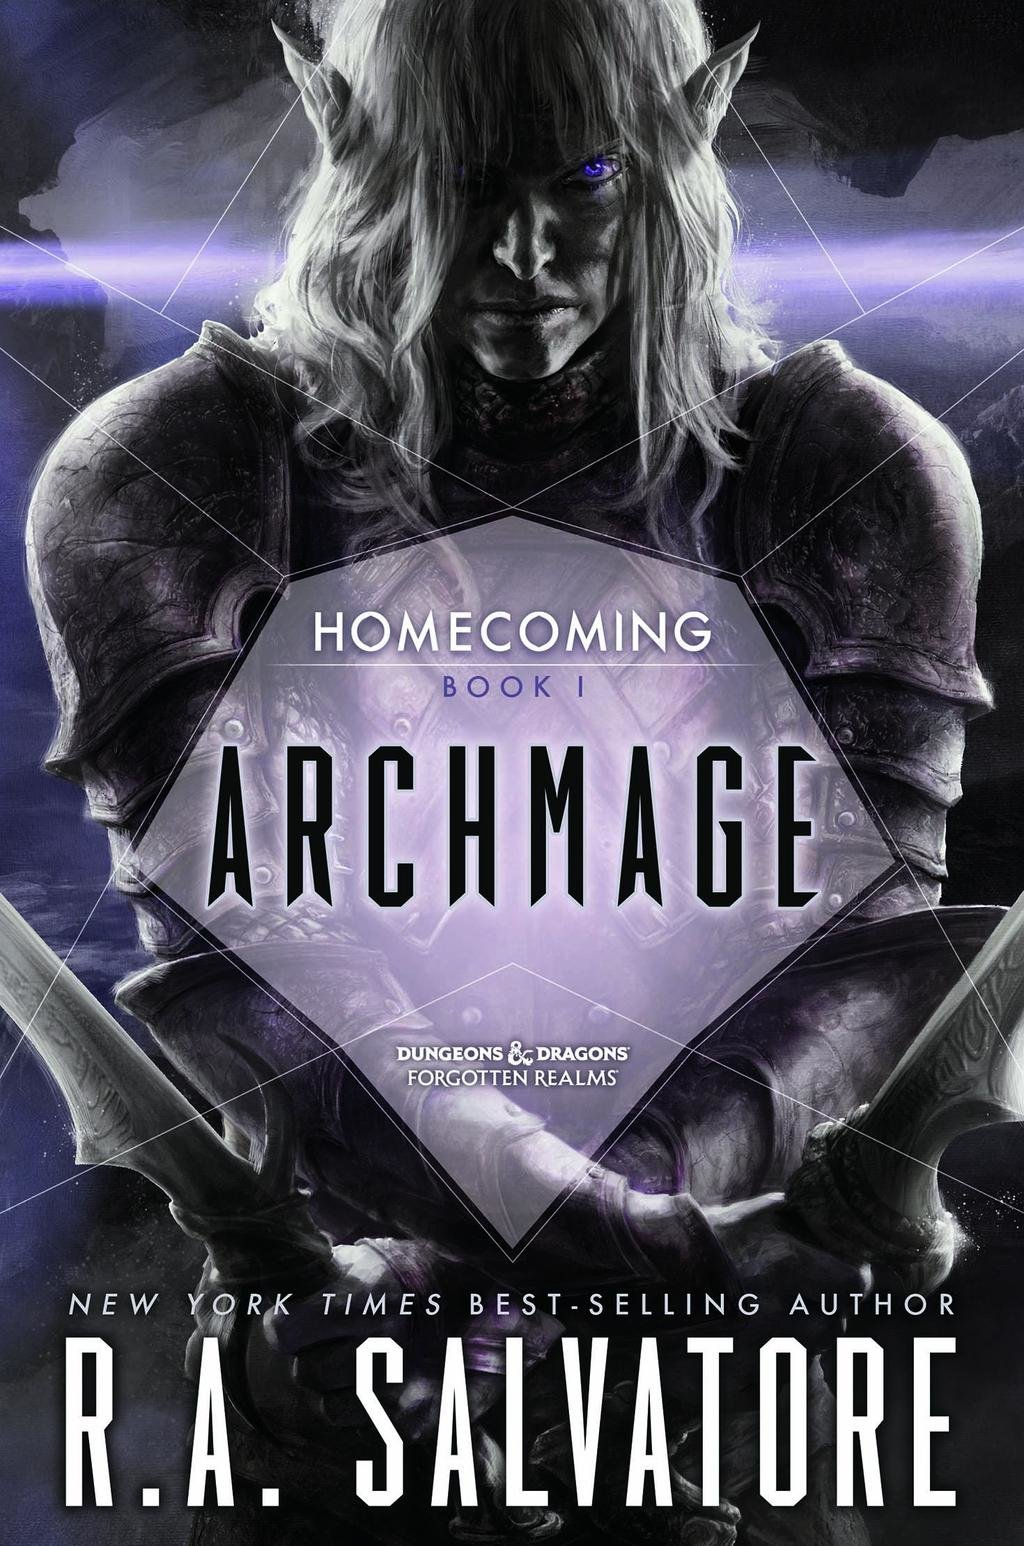 Archmage book cover / R.A. Salvatore